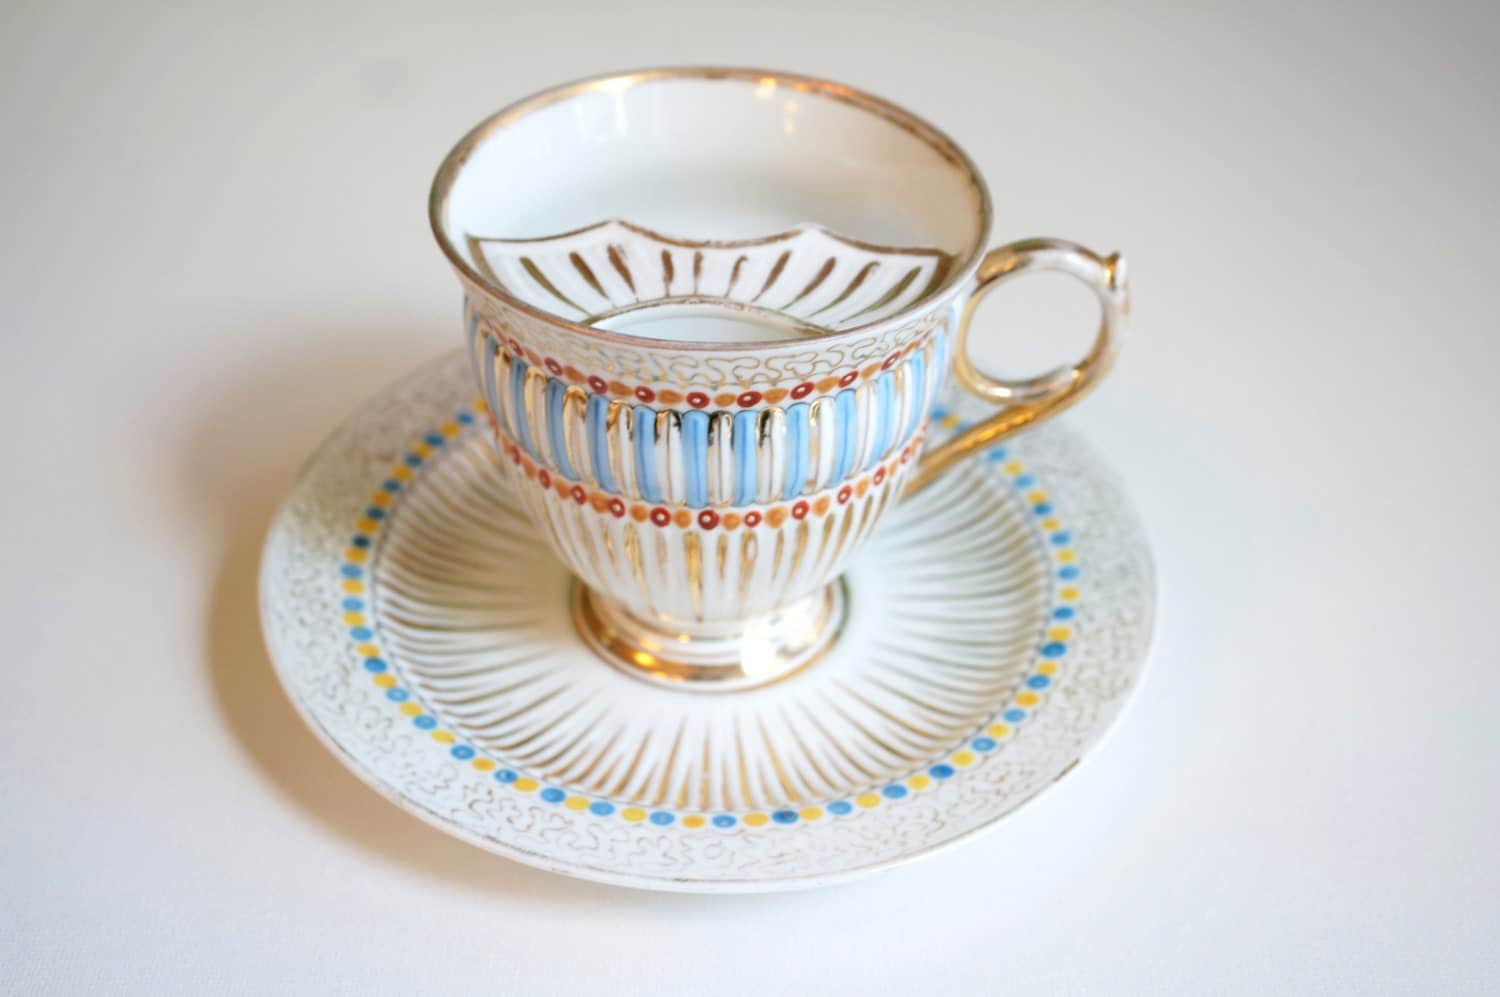 Gentleman S Teacup Handpainted Vintage Mustache Teacup